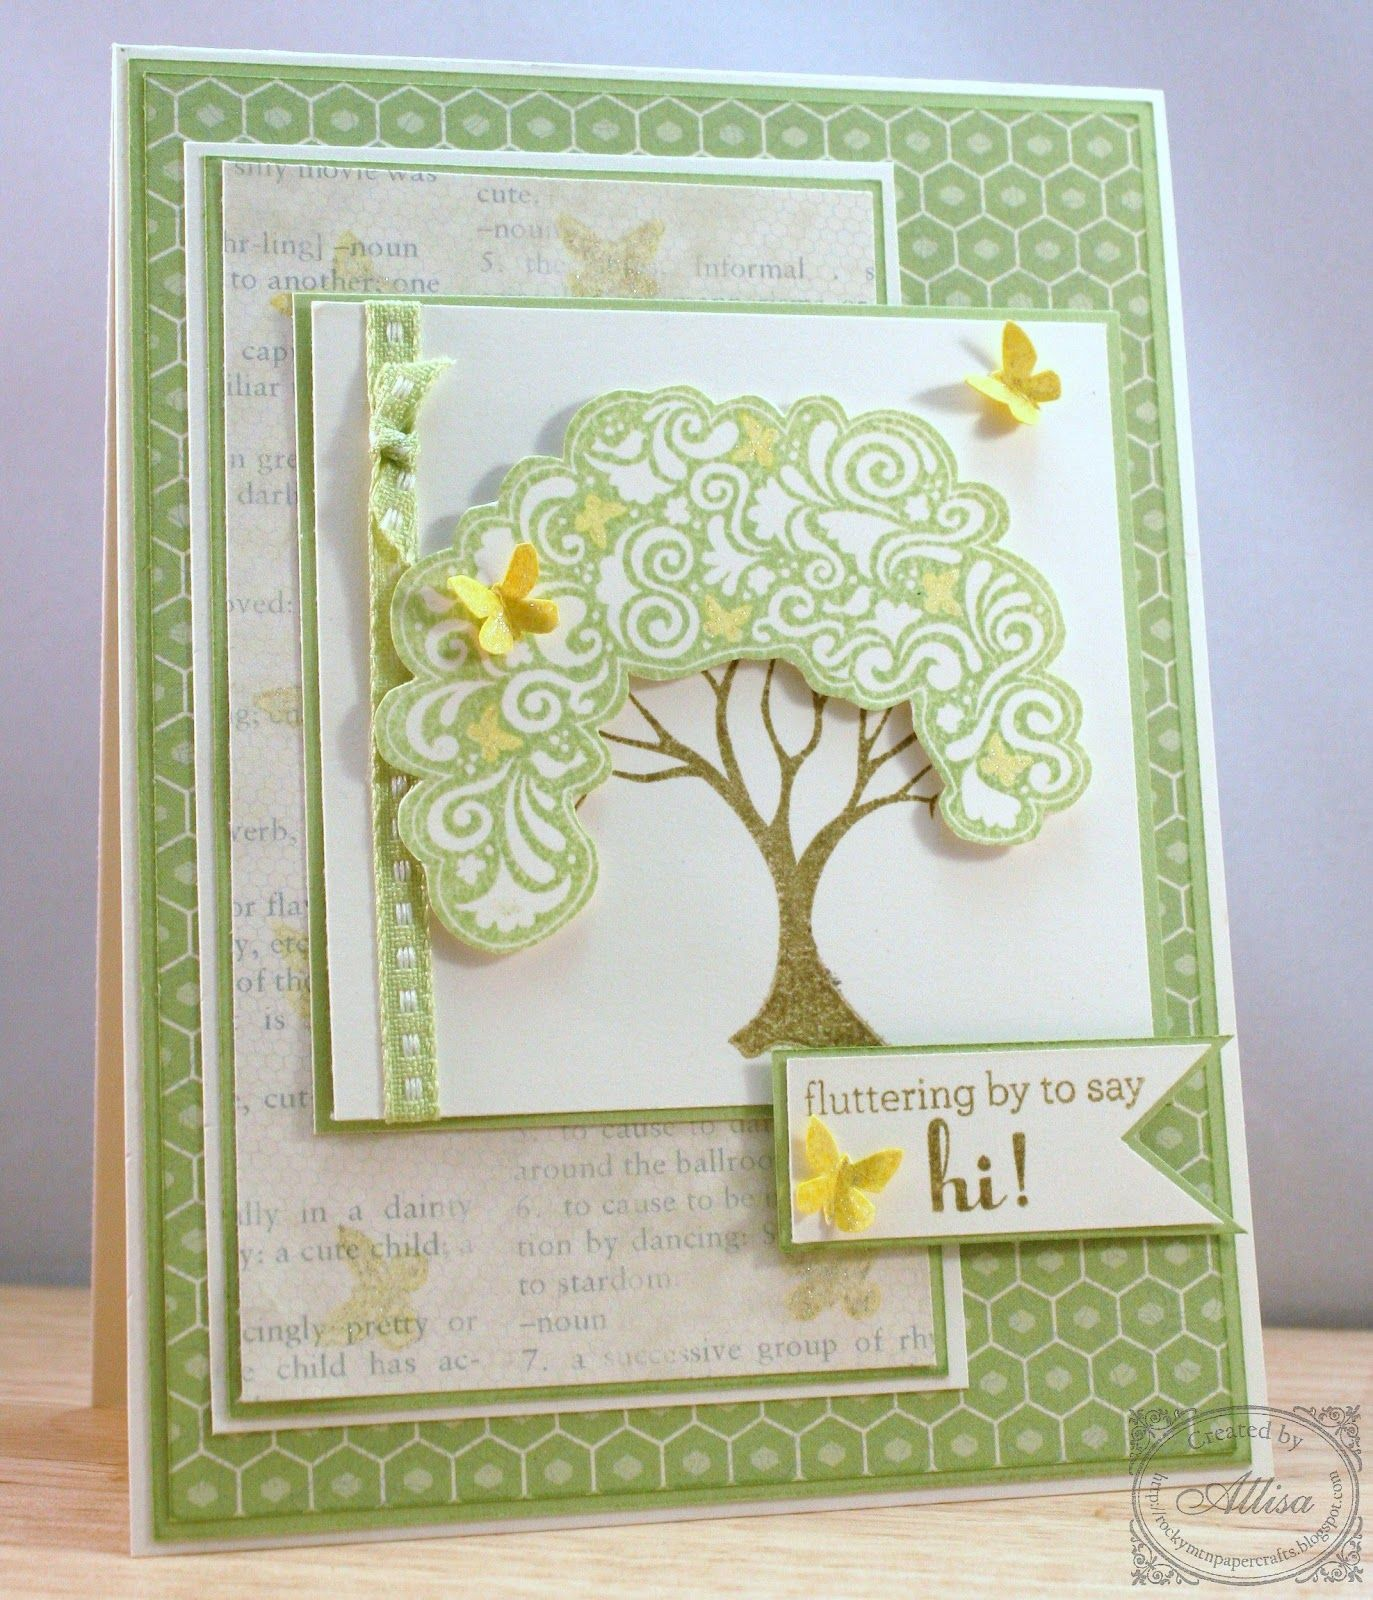 Rocky mountain paper crafts fms challenge 25 cards pinterest rocky mountain paper crafts fms challenge 25 kristyandbryce Images